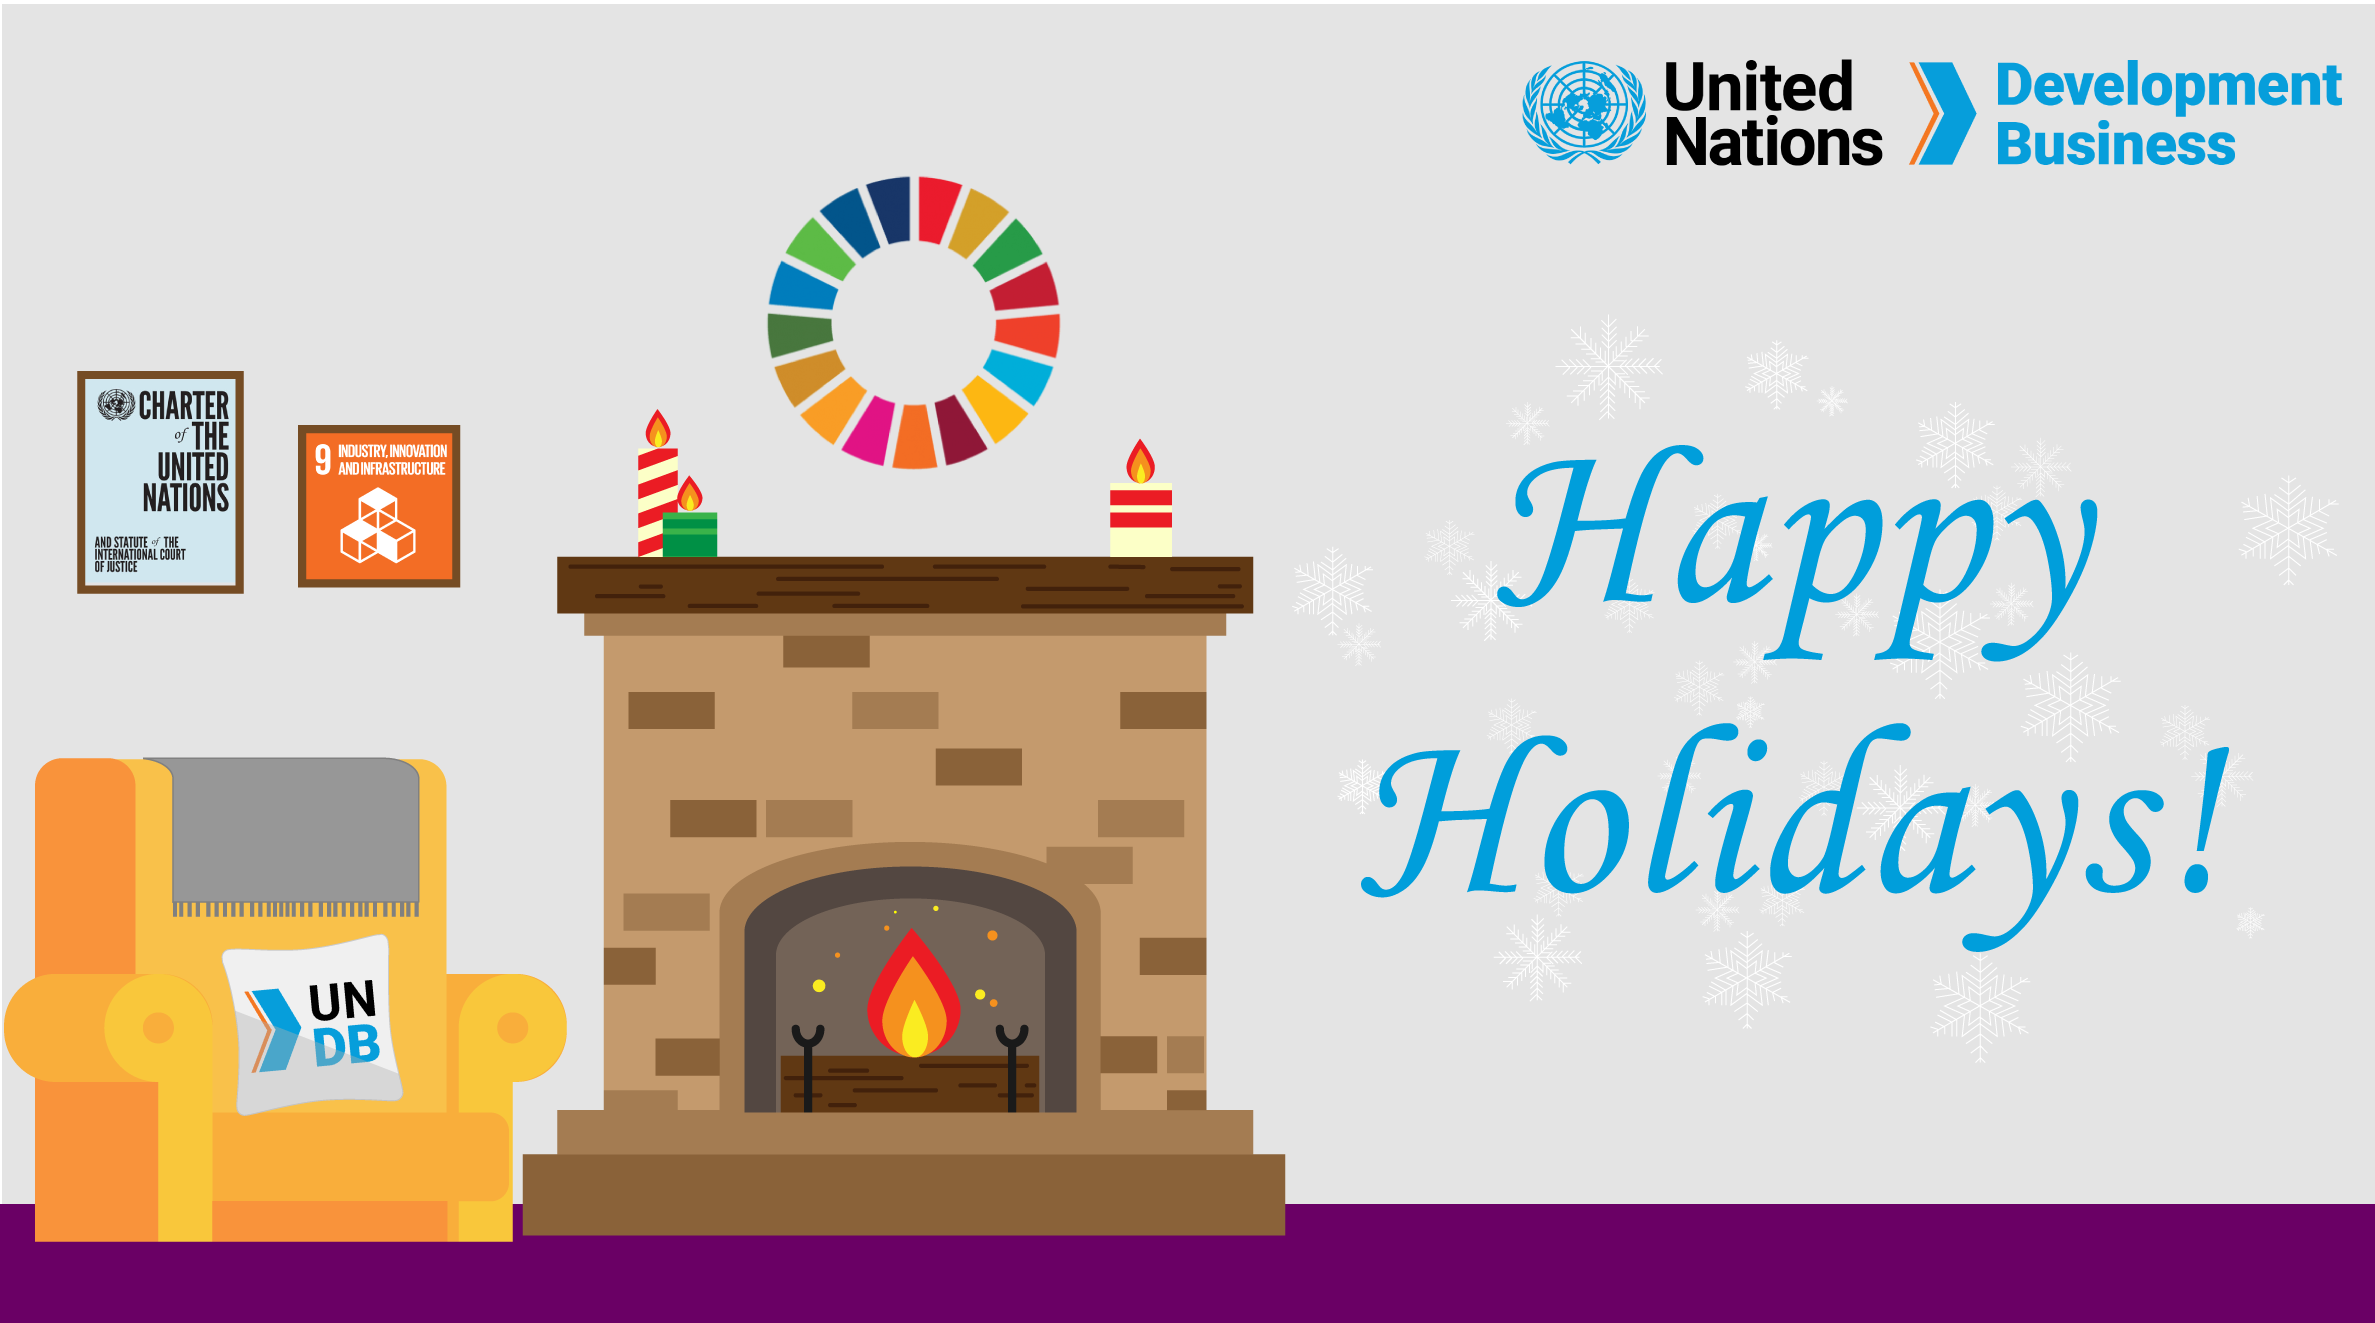 Happy holidays from UN Development Business